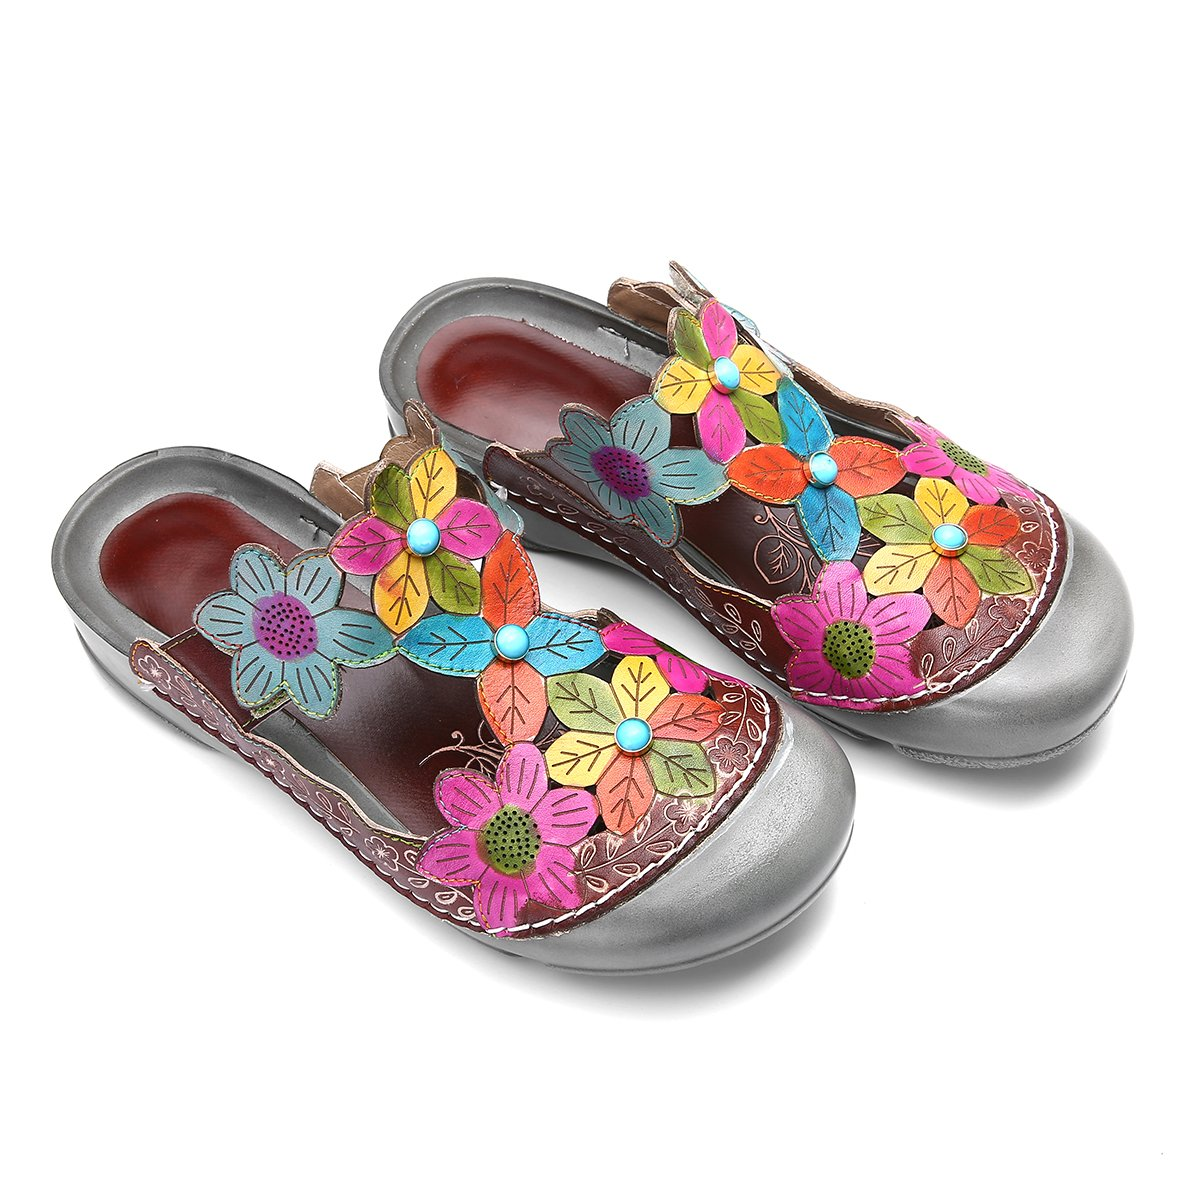 Camfosy Womens Leather Clogs Summer Slip On Flat Sandals Vintage Colorful Closed Toe Slippers Mule Clogs Shoes CAMFOSY Unius65465359799